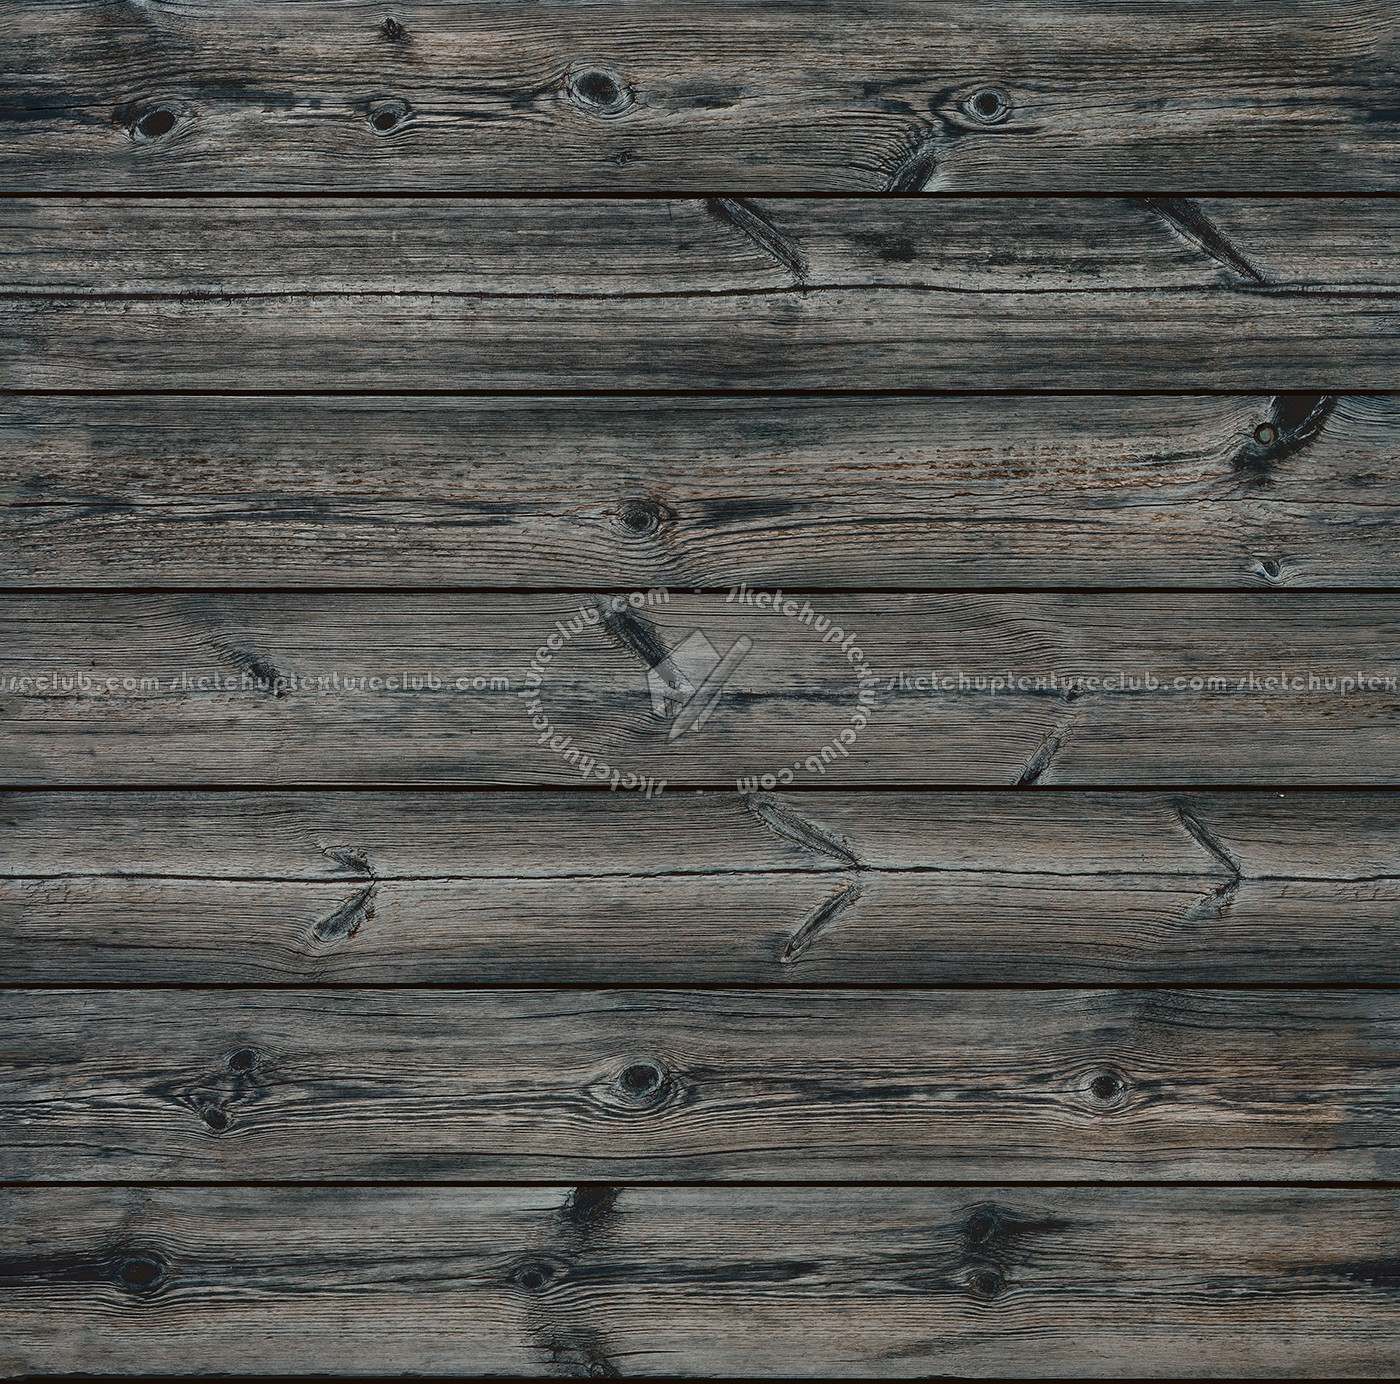 Wooden board texture photo